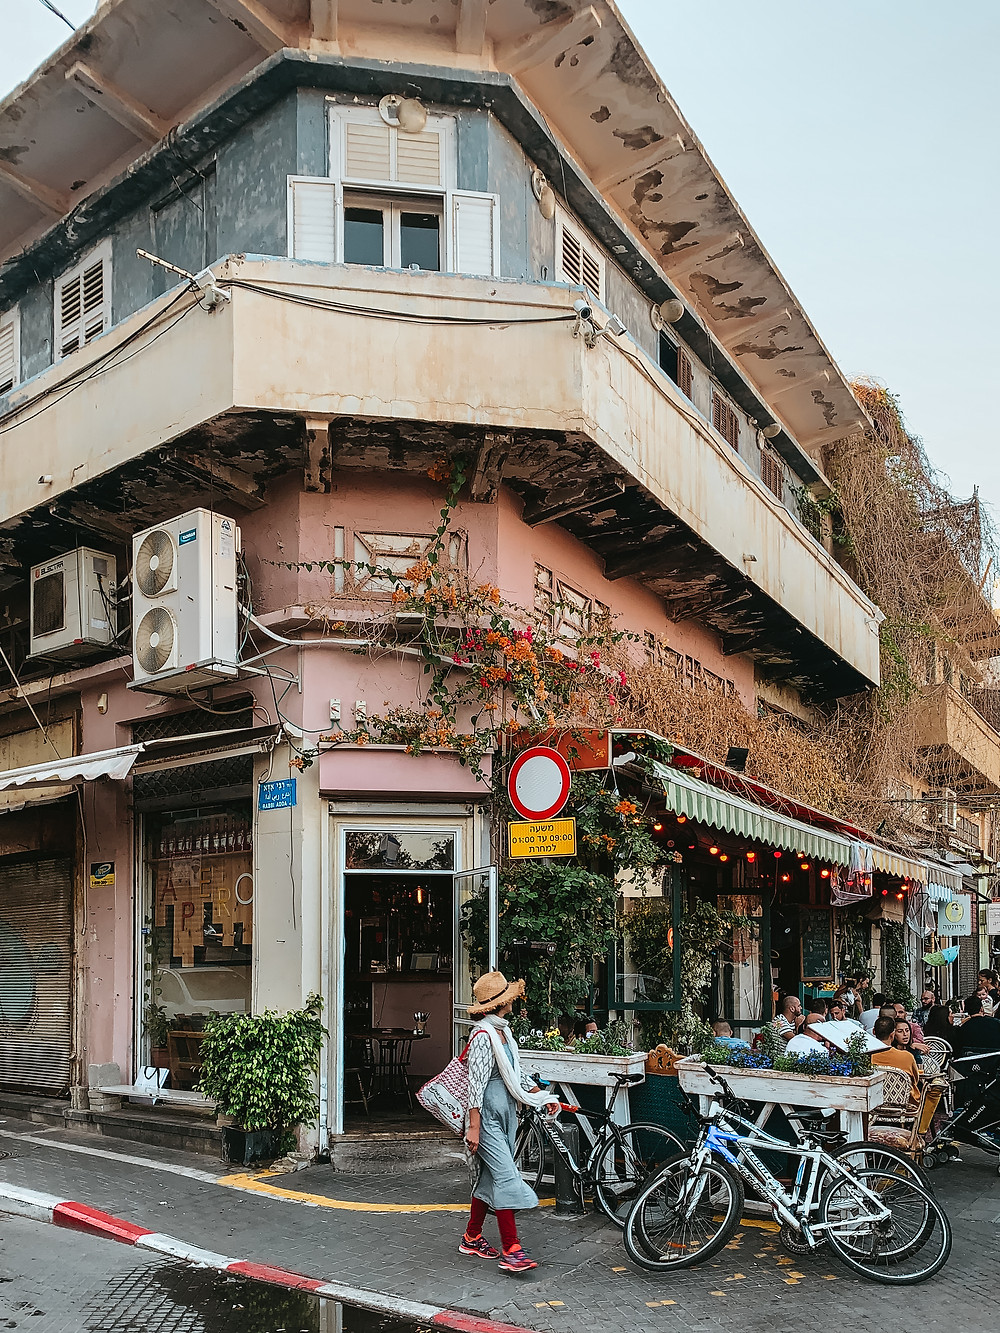 tel aviv, what to do in tel aviv, what to see in tel aviv, where to stay in tel aviv, where to eat in tel aviv, best hotel to stay in tel aviv, best area to stay in tel aviv, is tel aviv safe, tel aviv yafo, tel aviv tourism, tel aviv airport, tel aviv hotels